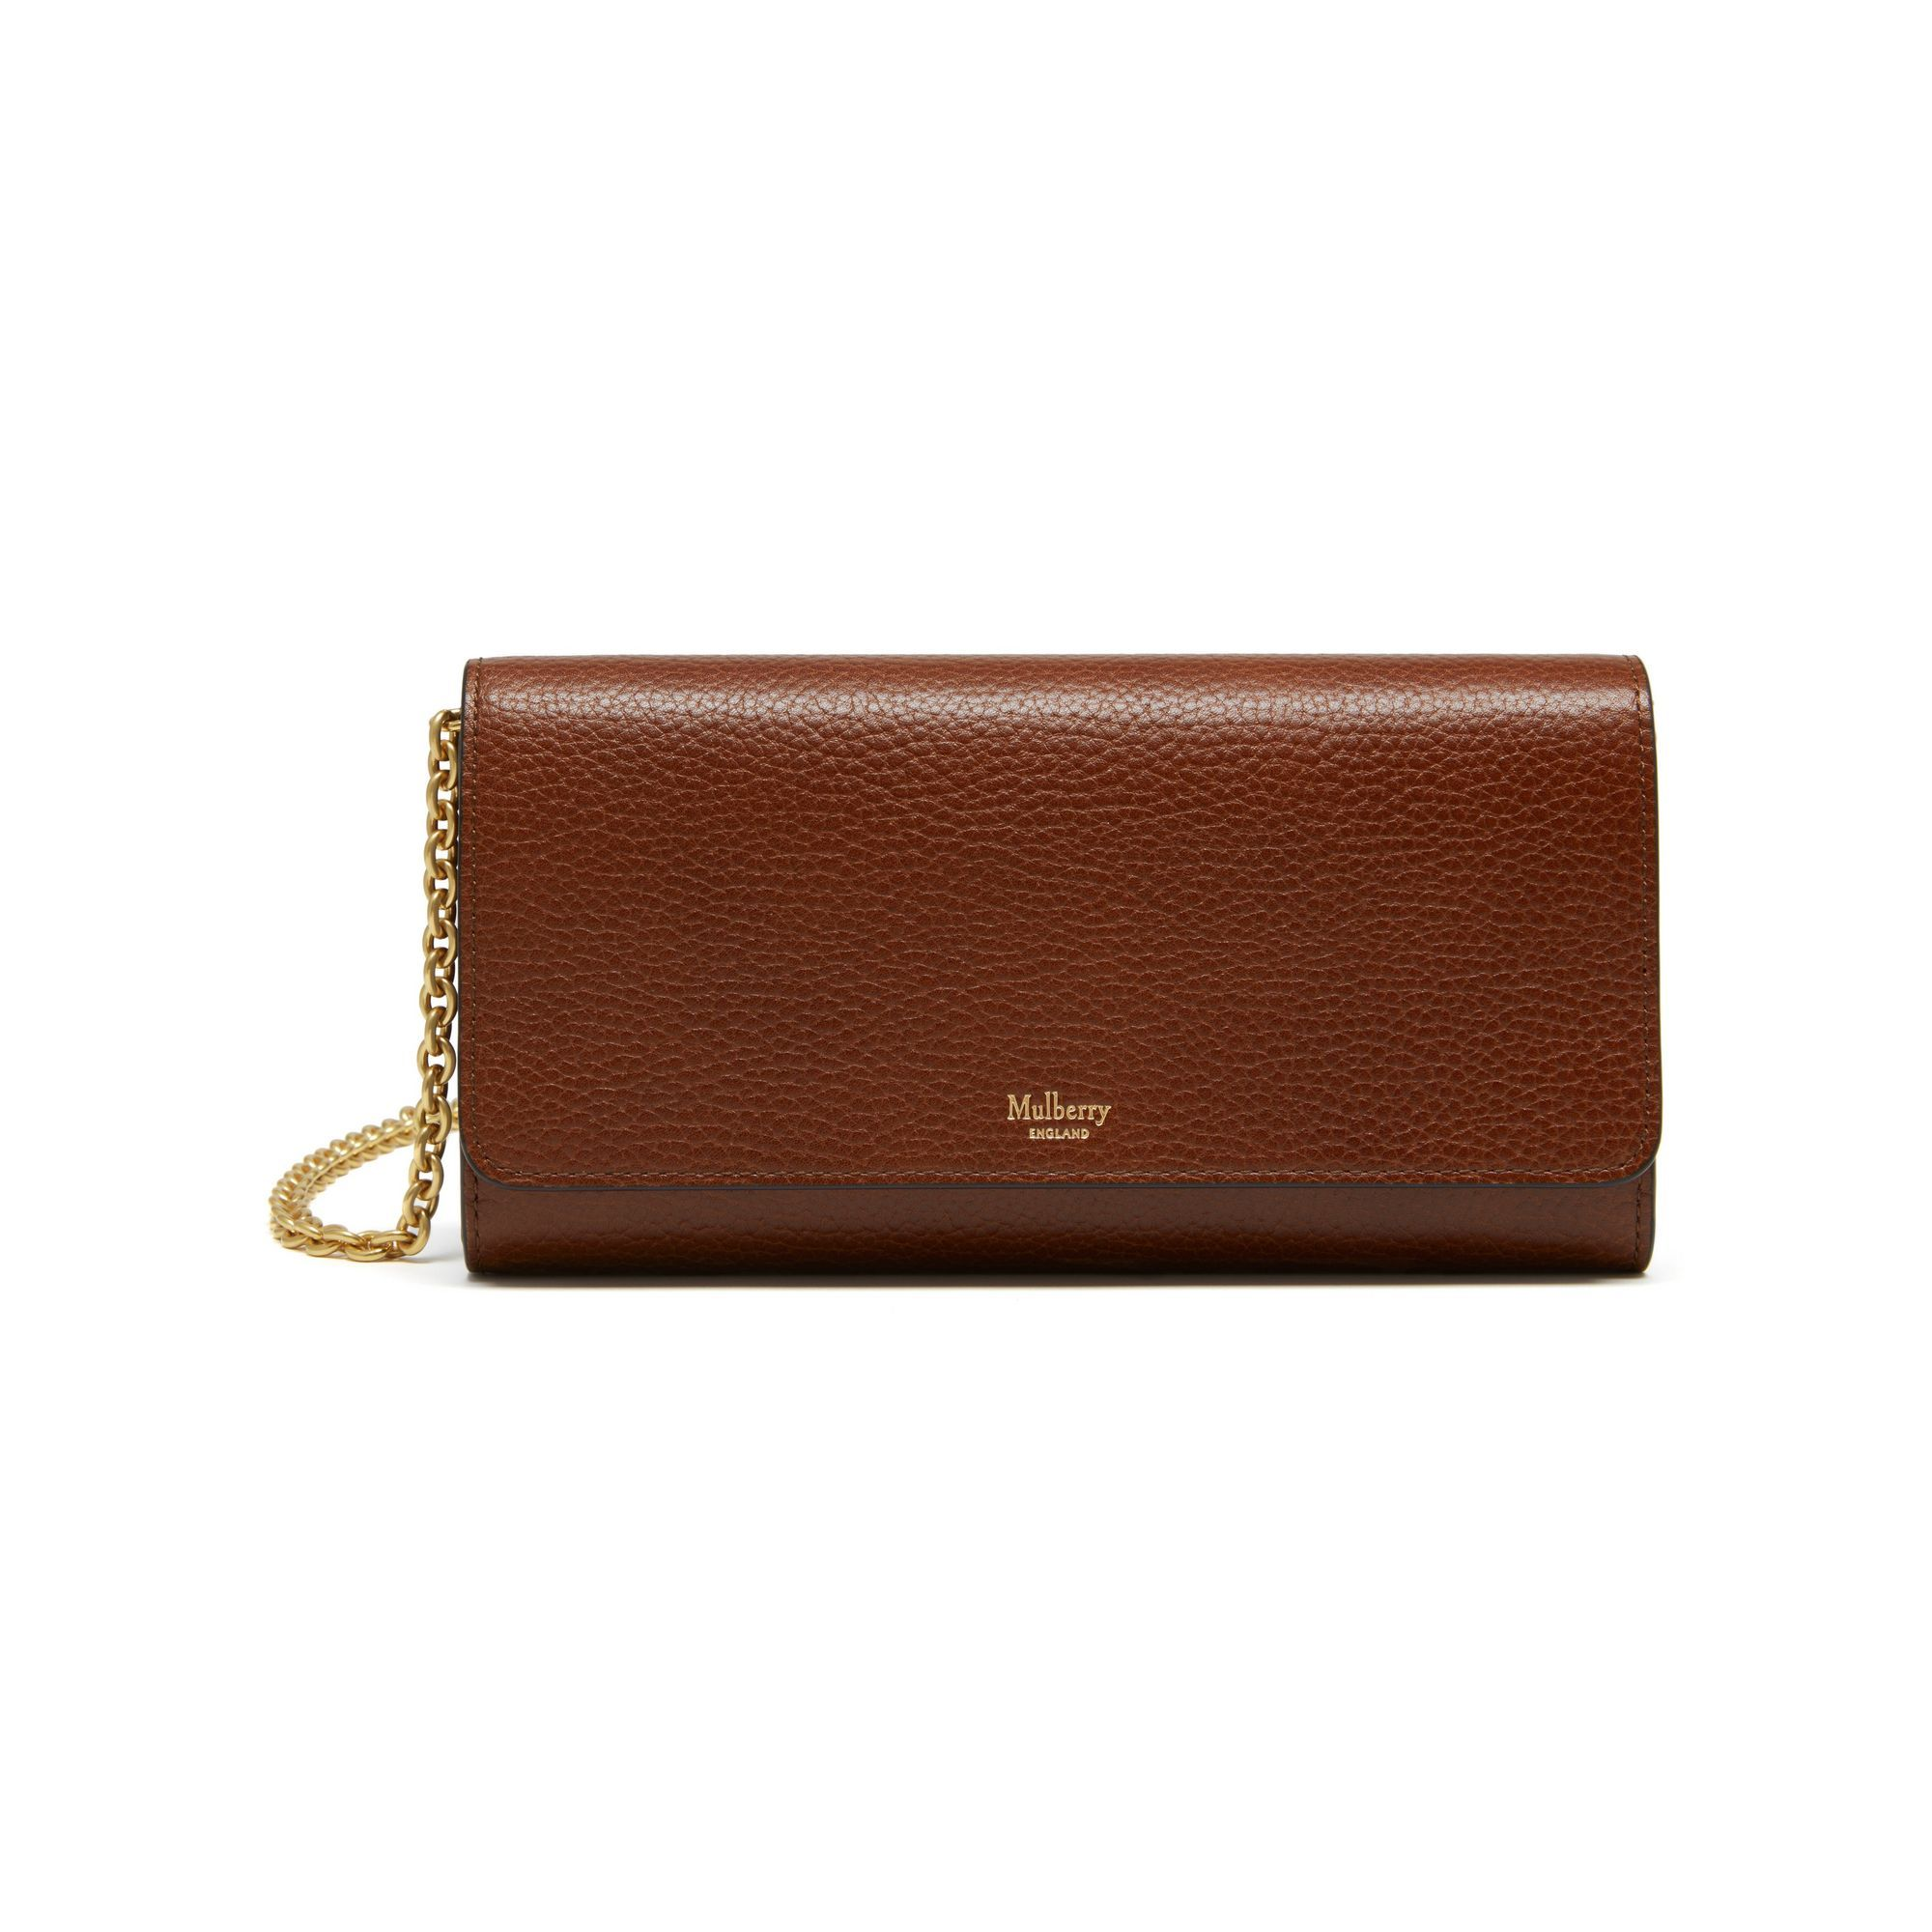 013d9435dd Shop the Continental Clutch in Oak Natural Grain Leather at Mulberry.com.  Introducing the new Continental Clutch